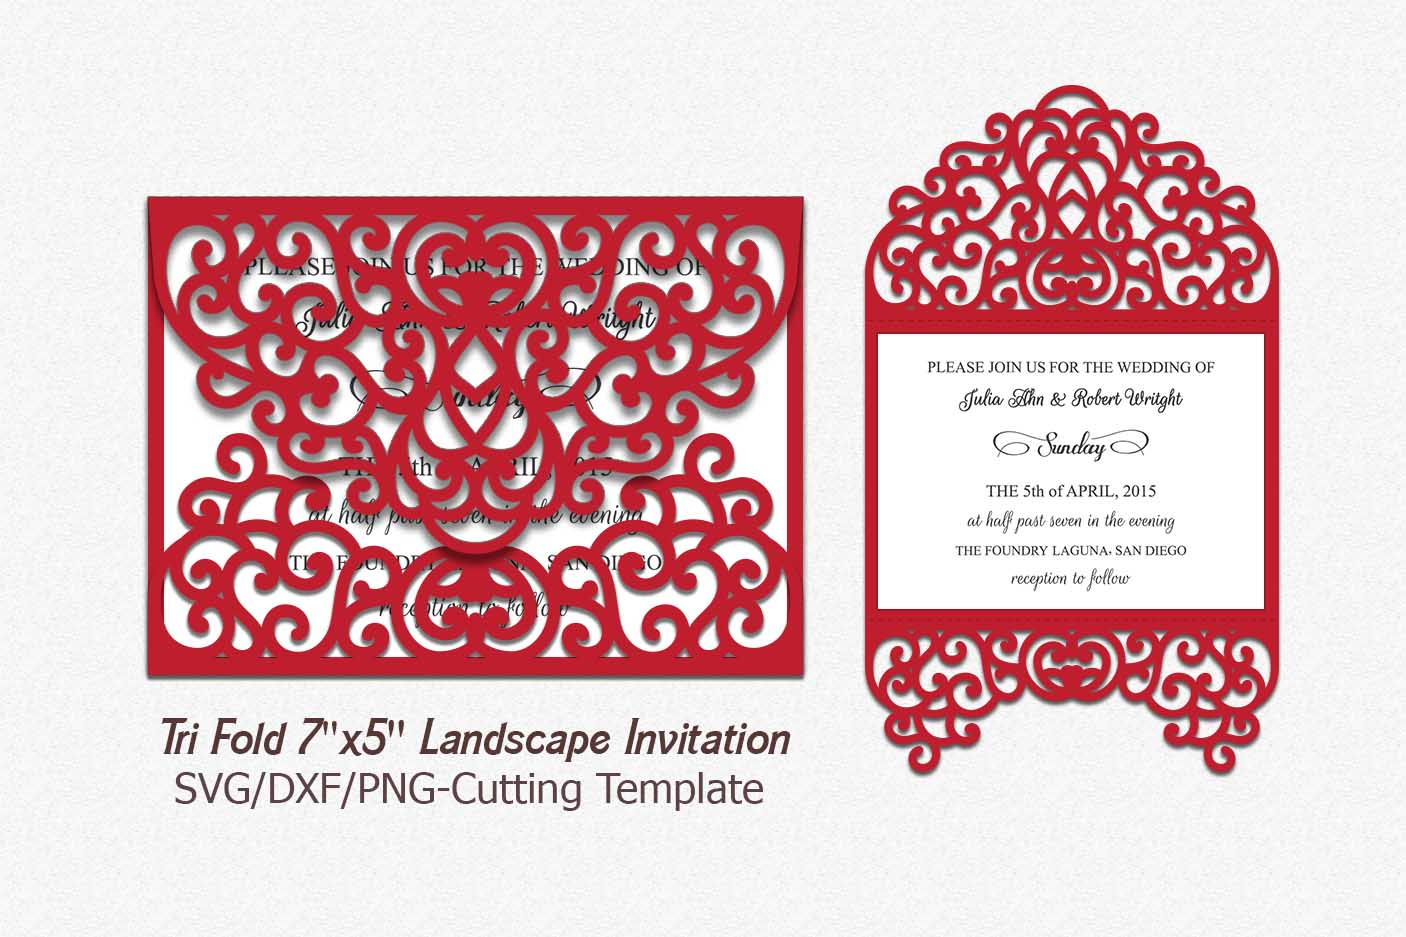 tri fold card invitation svg dxf laser machine cut template